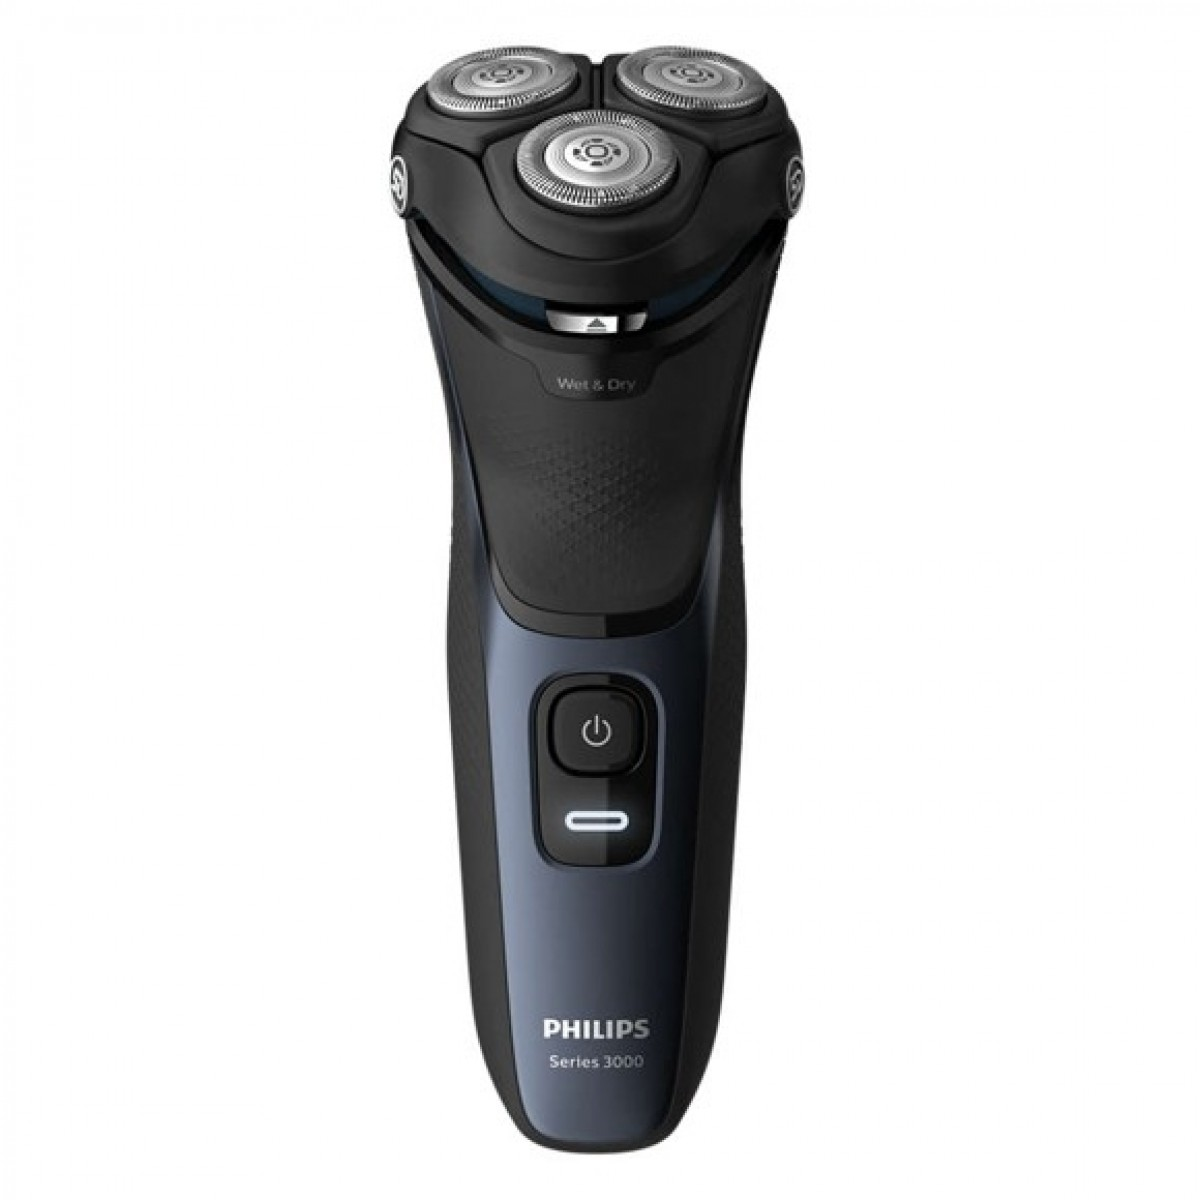 PHILIPS Shaver S3134/51